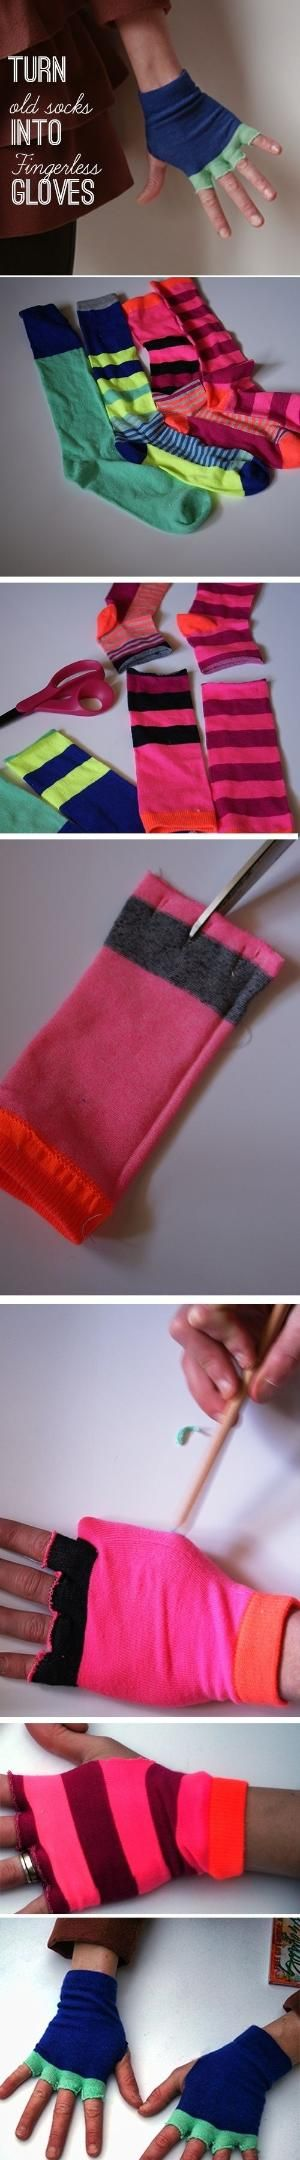 DIY gloves from old socks #DIY #crafts by Krista.S                                                                                                                                                                                 Mais